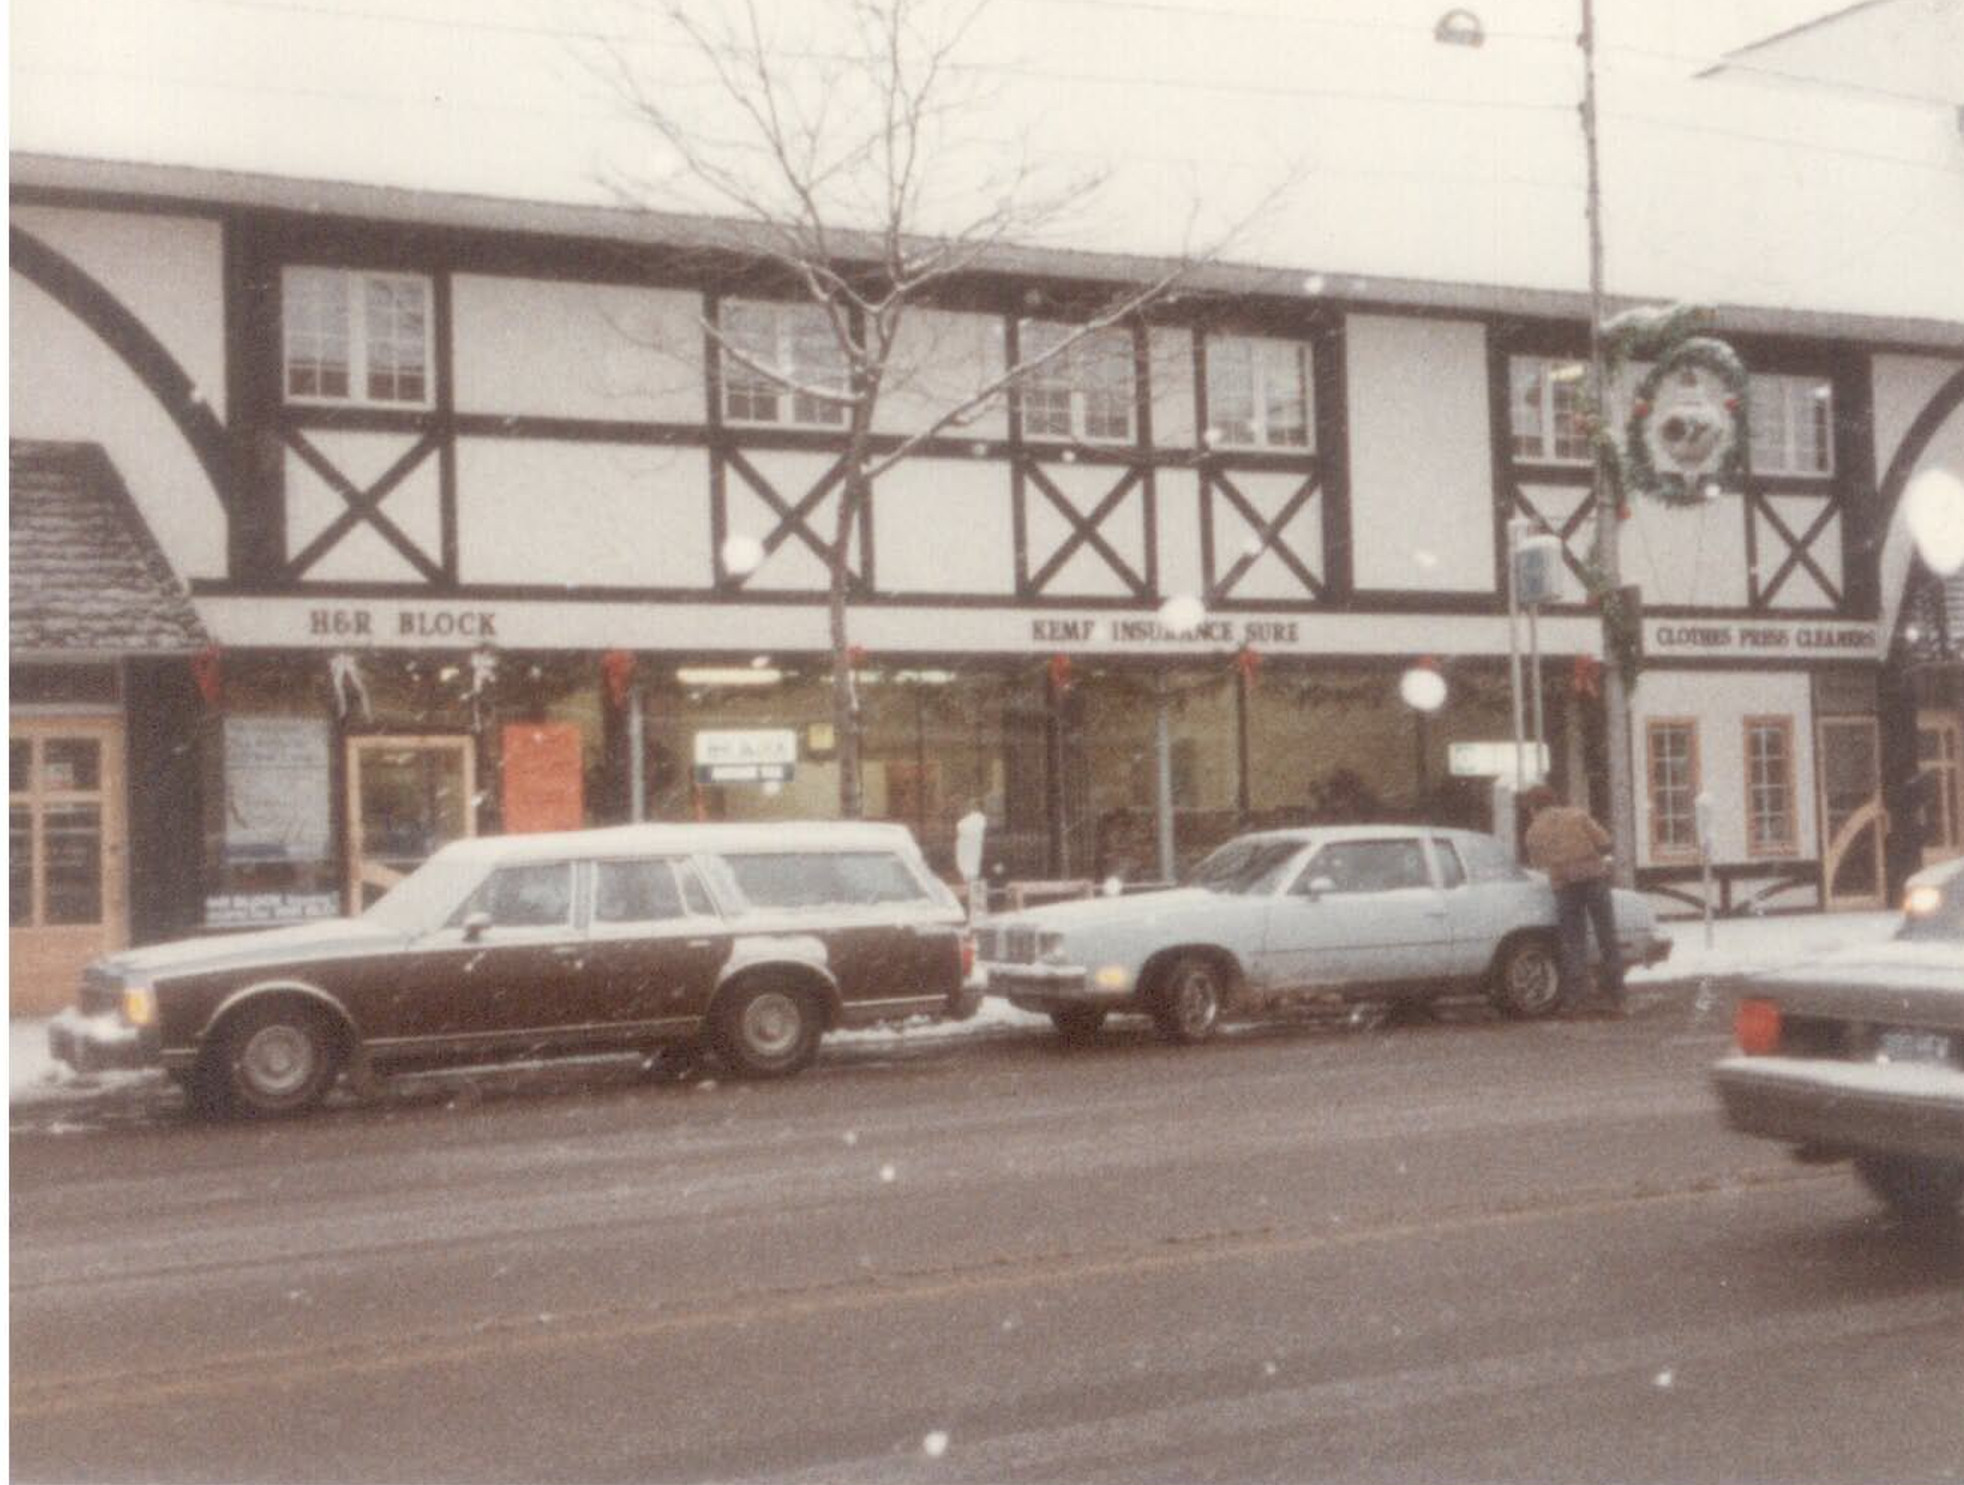 Kemp Insurance 311 S. Lafayette after facade renovation 1983.